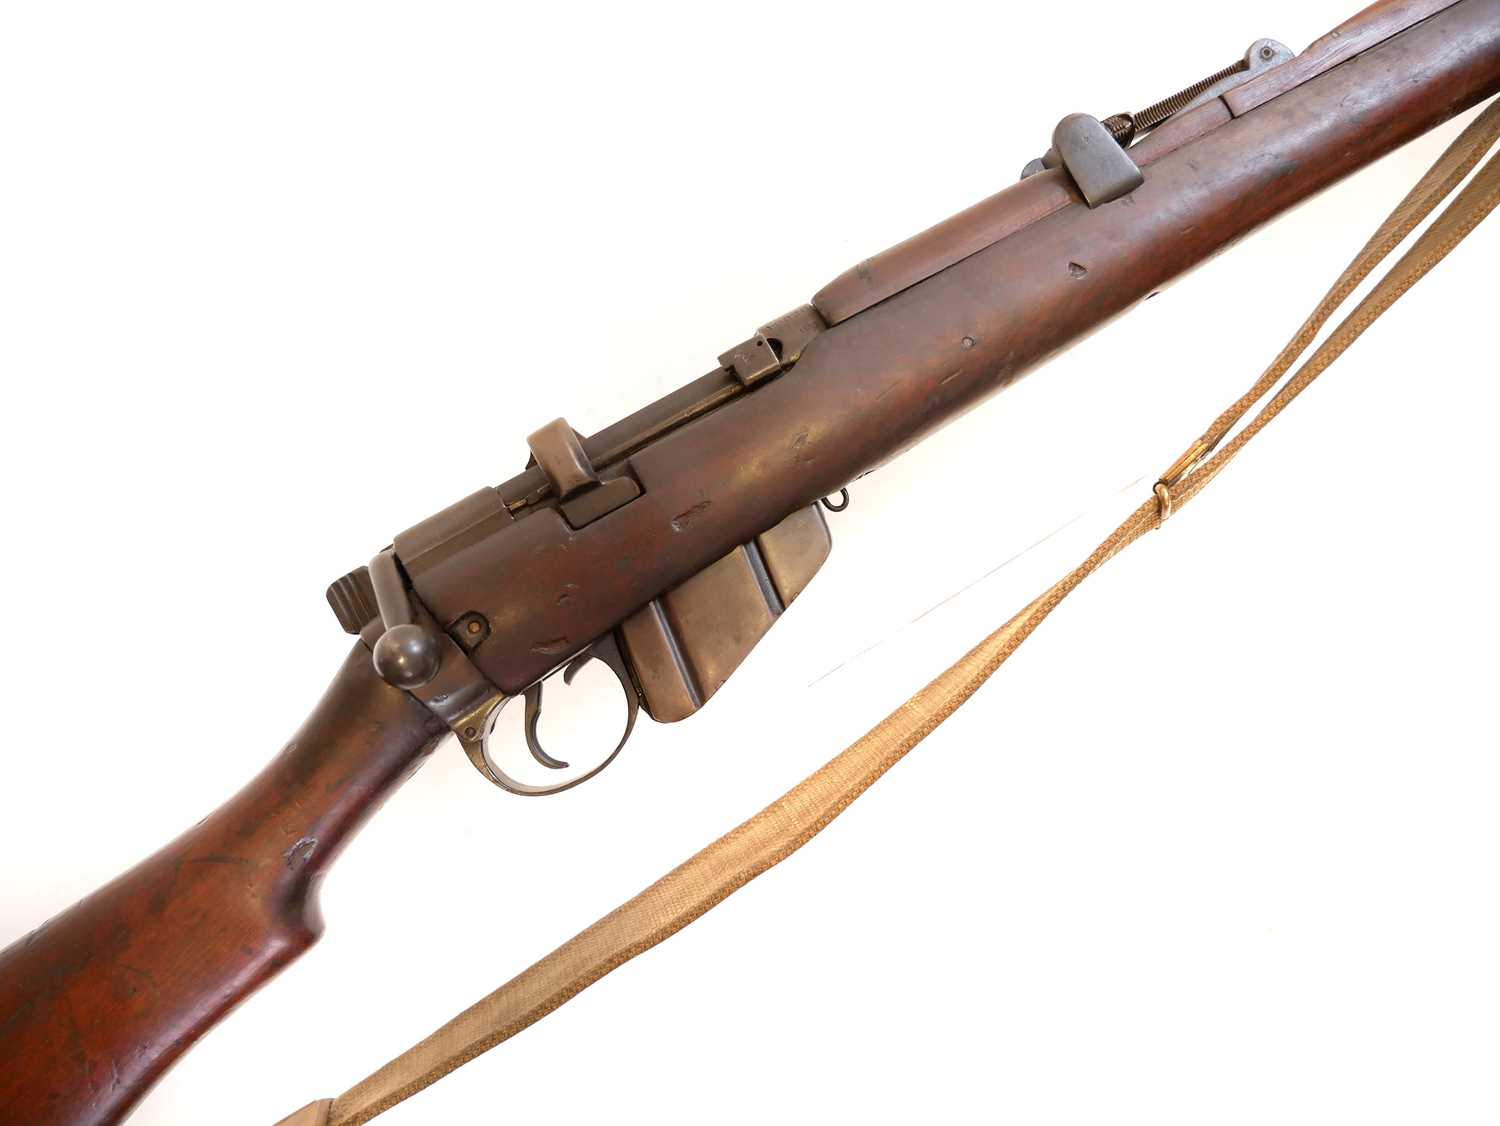 Lot Deactivated Lee Enfield .303 SMLE Rifle